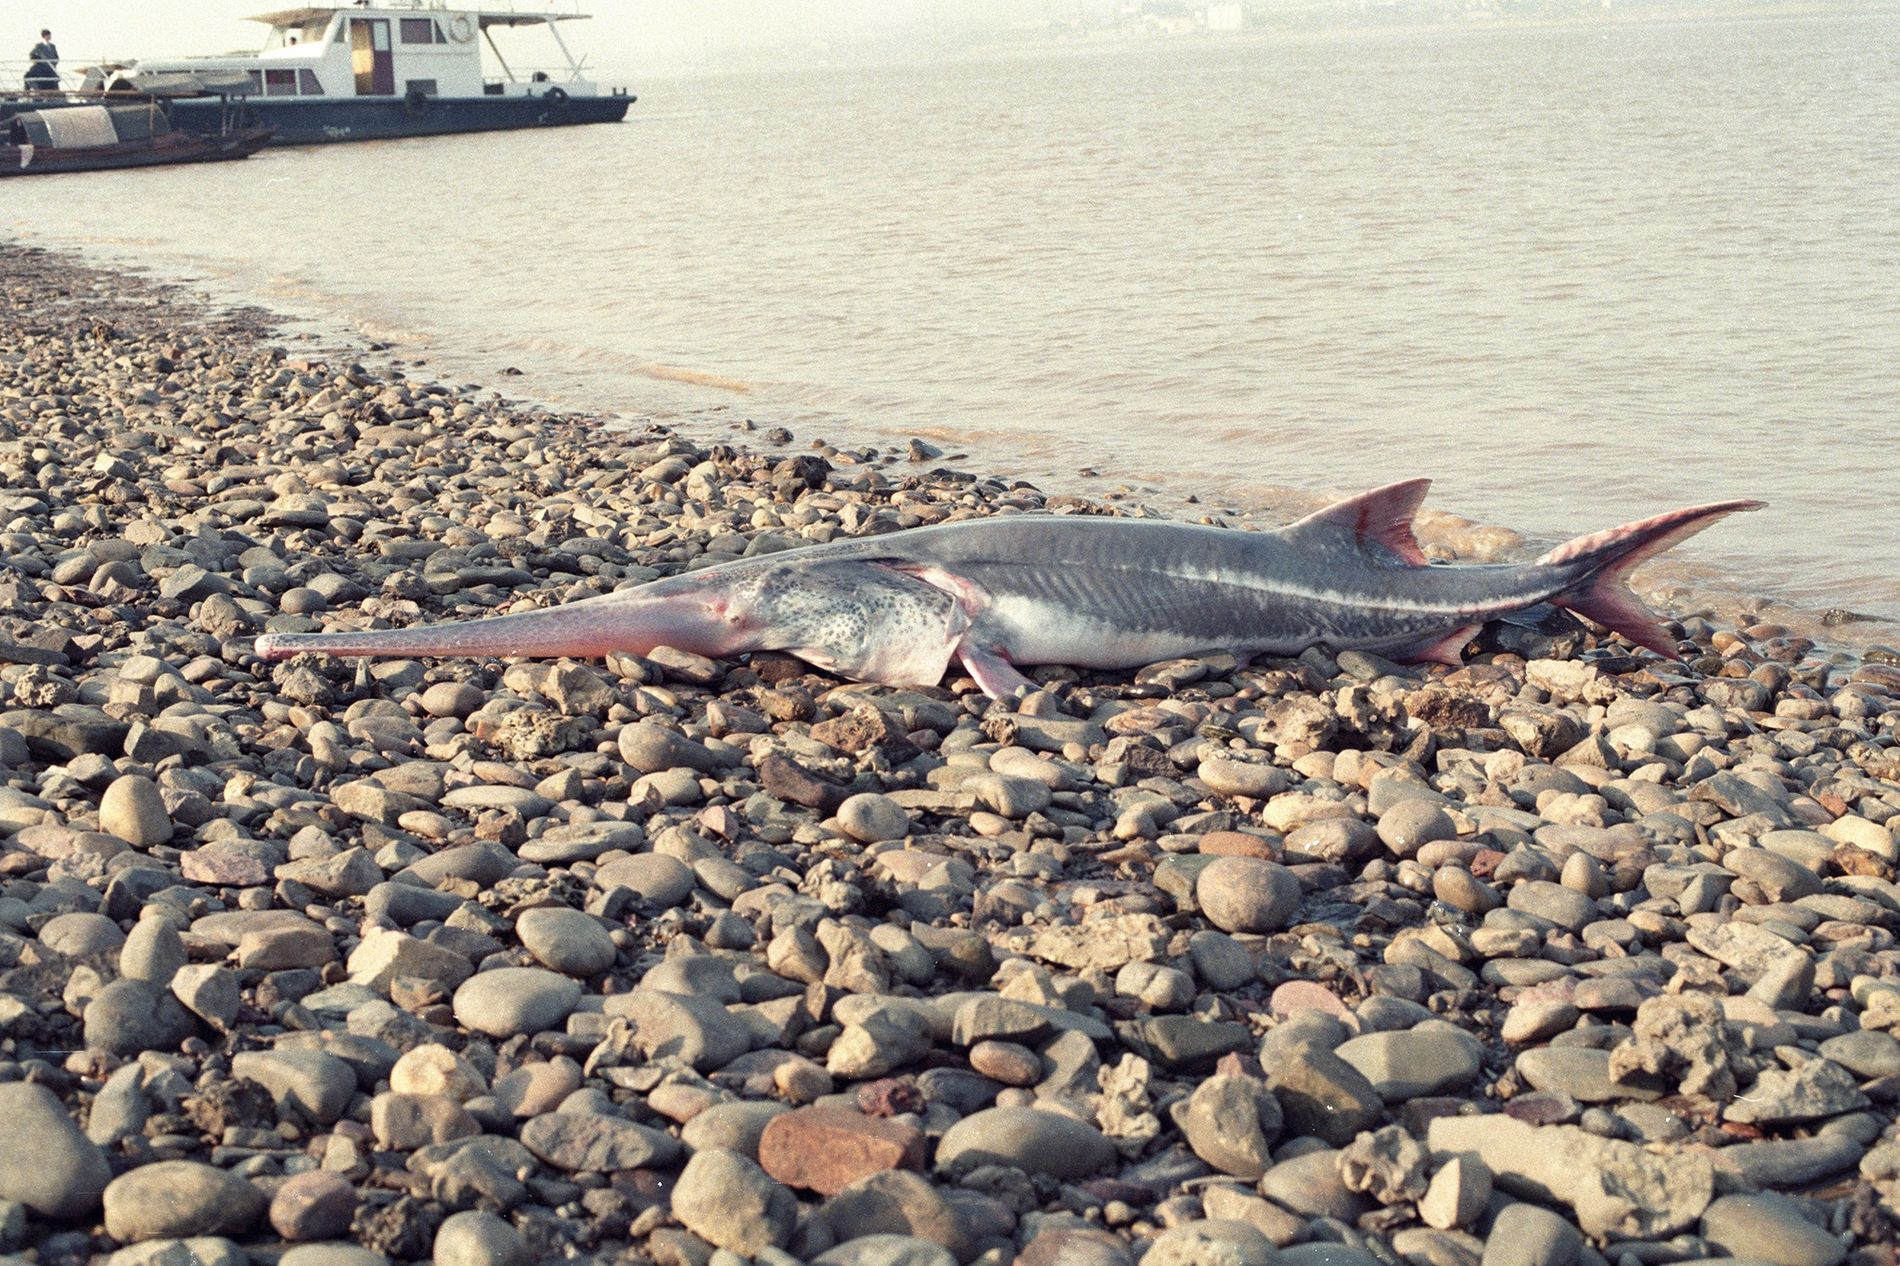 The last Chinese paddlefish (Psephurus gladius) was seen alive in 2003, and they've been declared extinct. ...